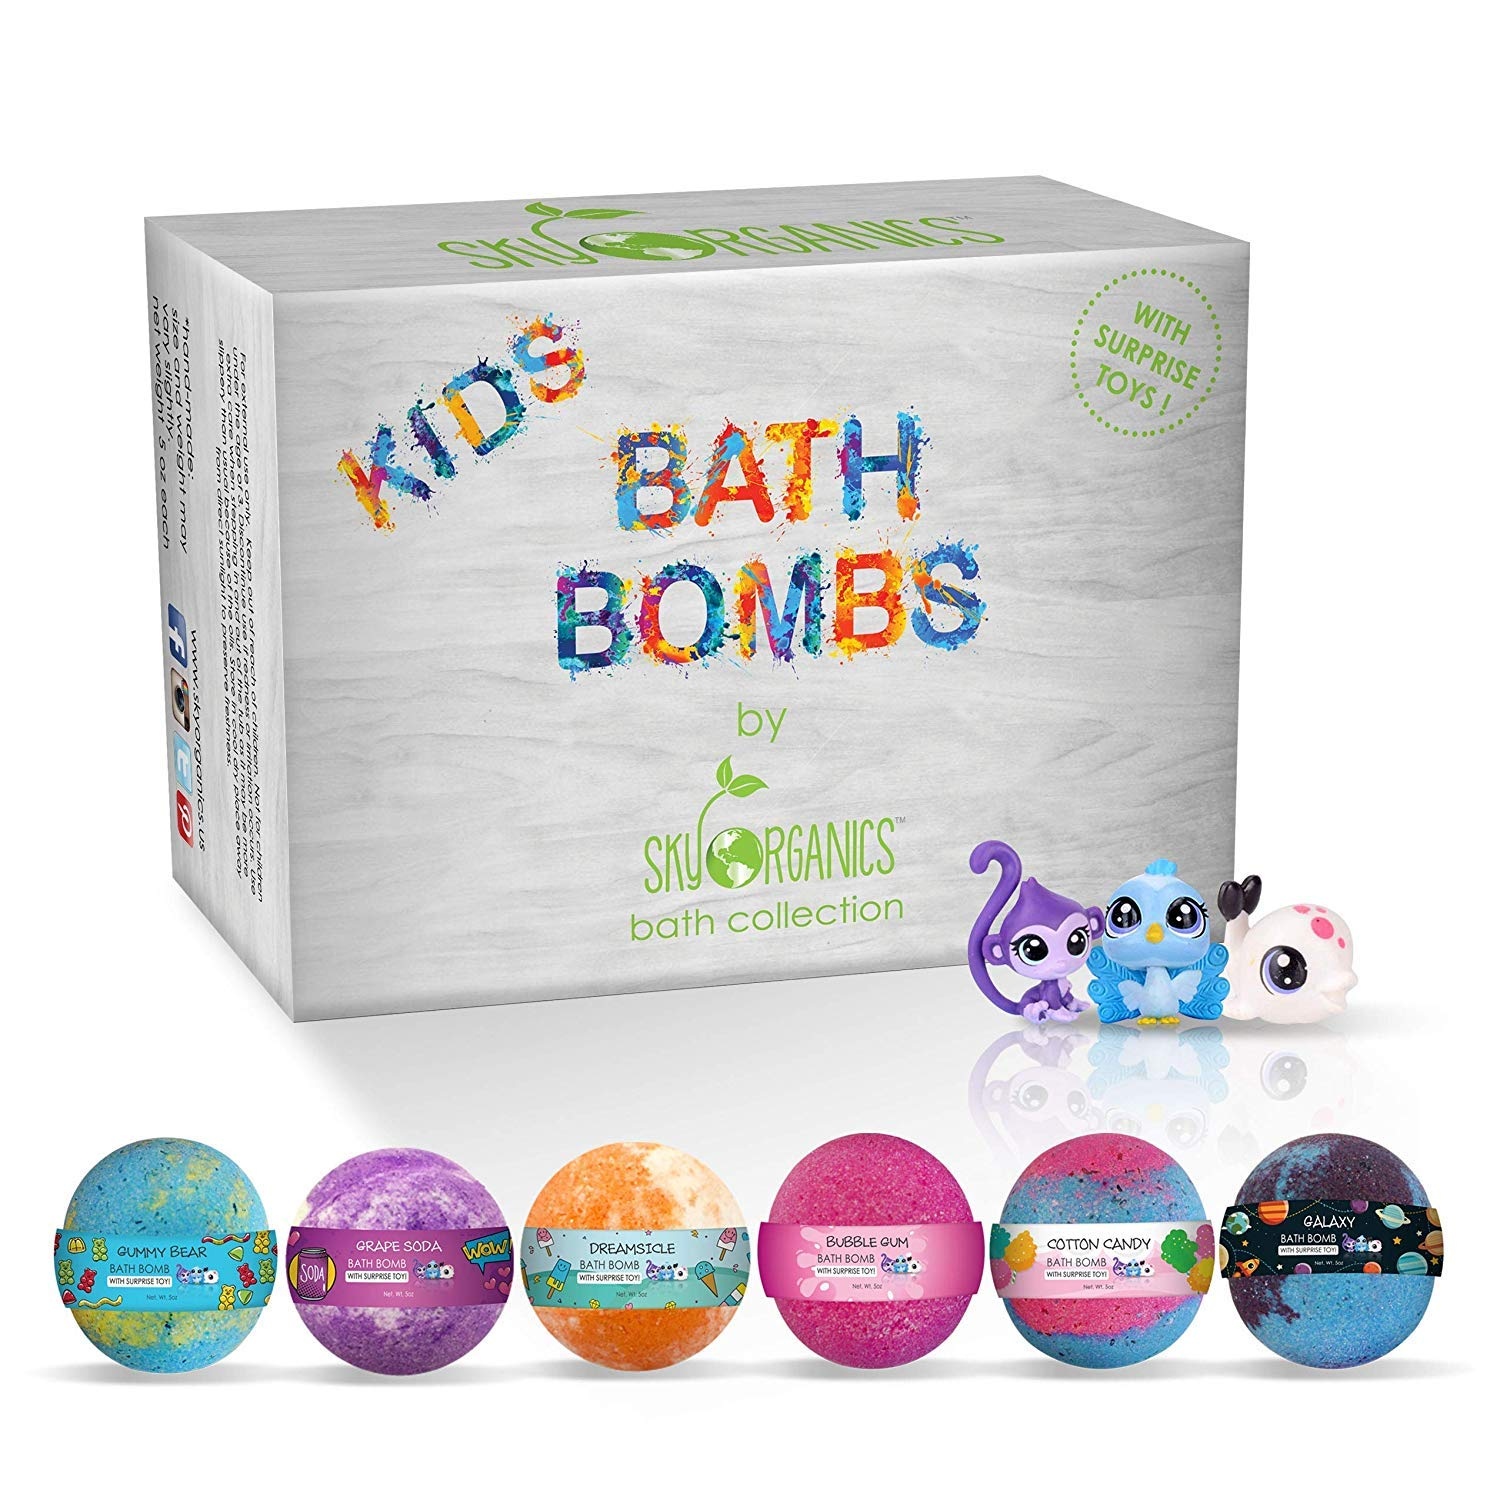 Kids Bath Bombs Gift Set with Surprise Toys, 6x5oz Fun Assorted Colored XL Bath Fizzies, Kid Safe, Gender Neutral with Natural Essential Oils -Handmade in the USA Bubble Bath Fizzy by Sky Organics